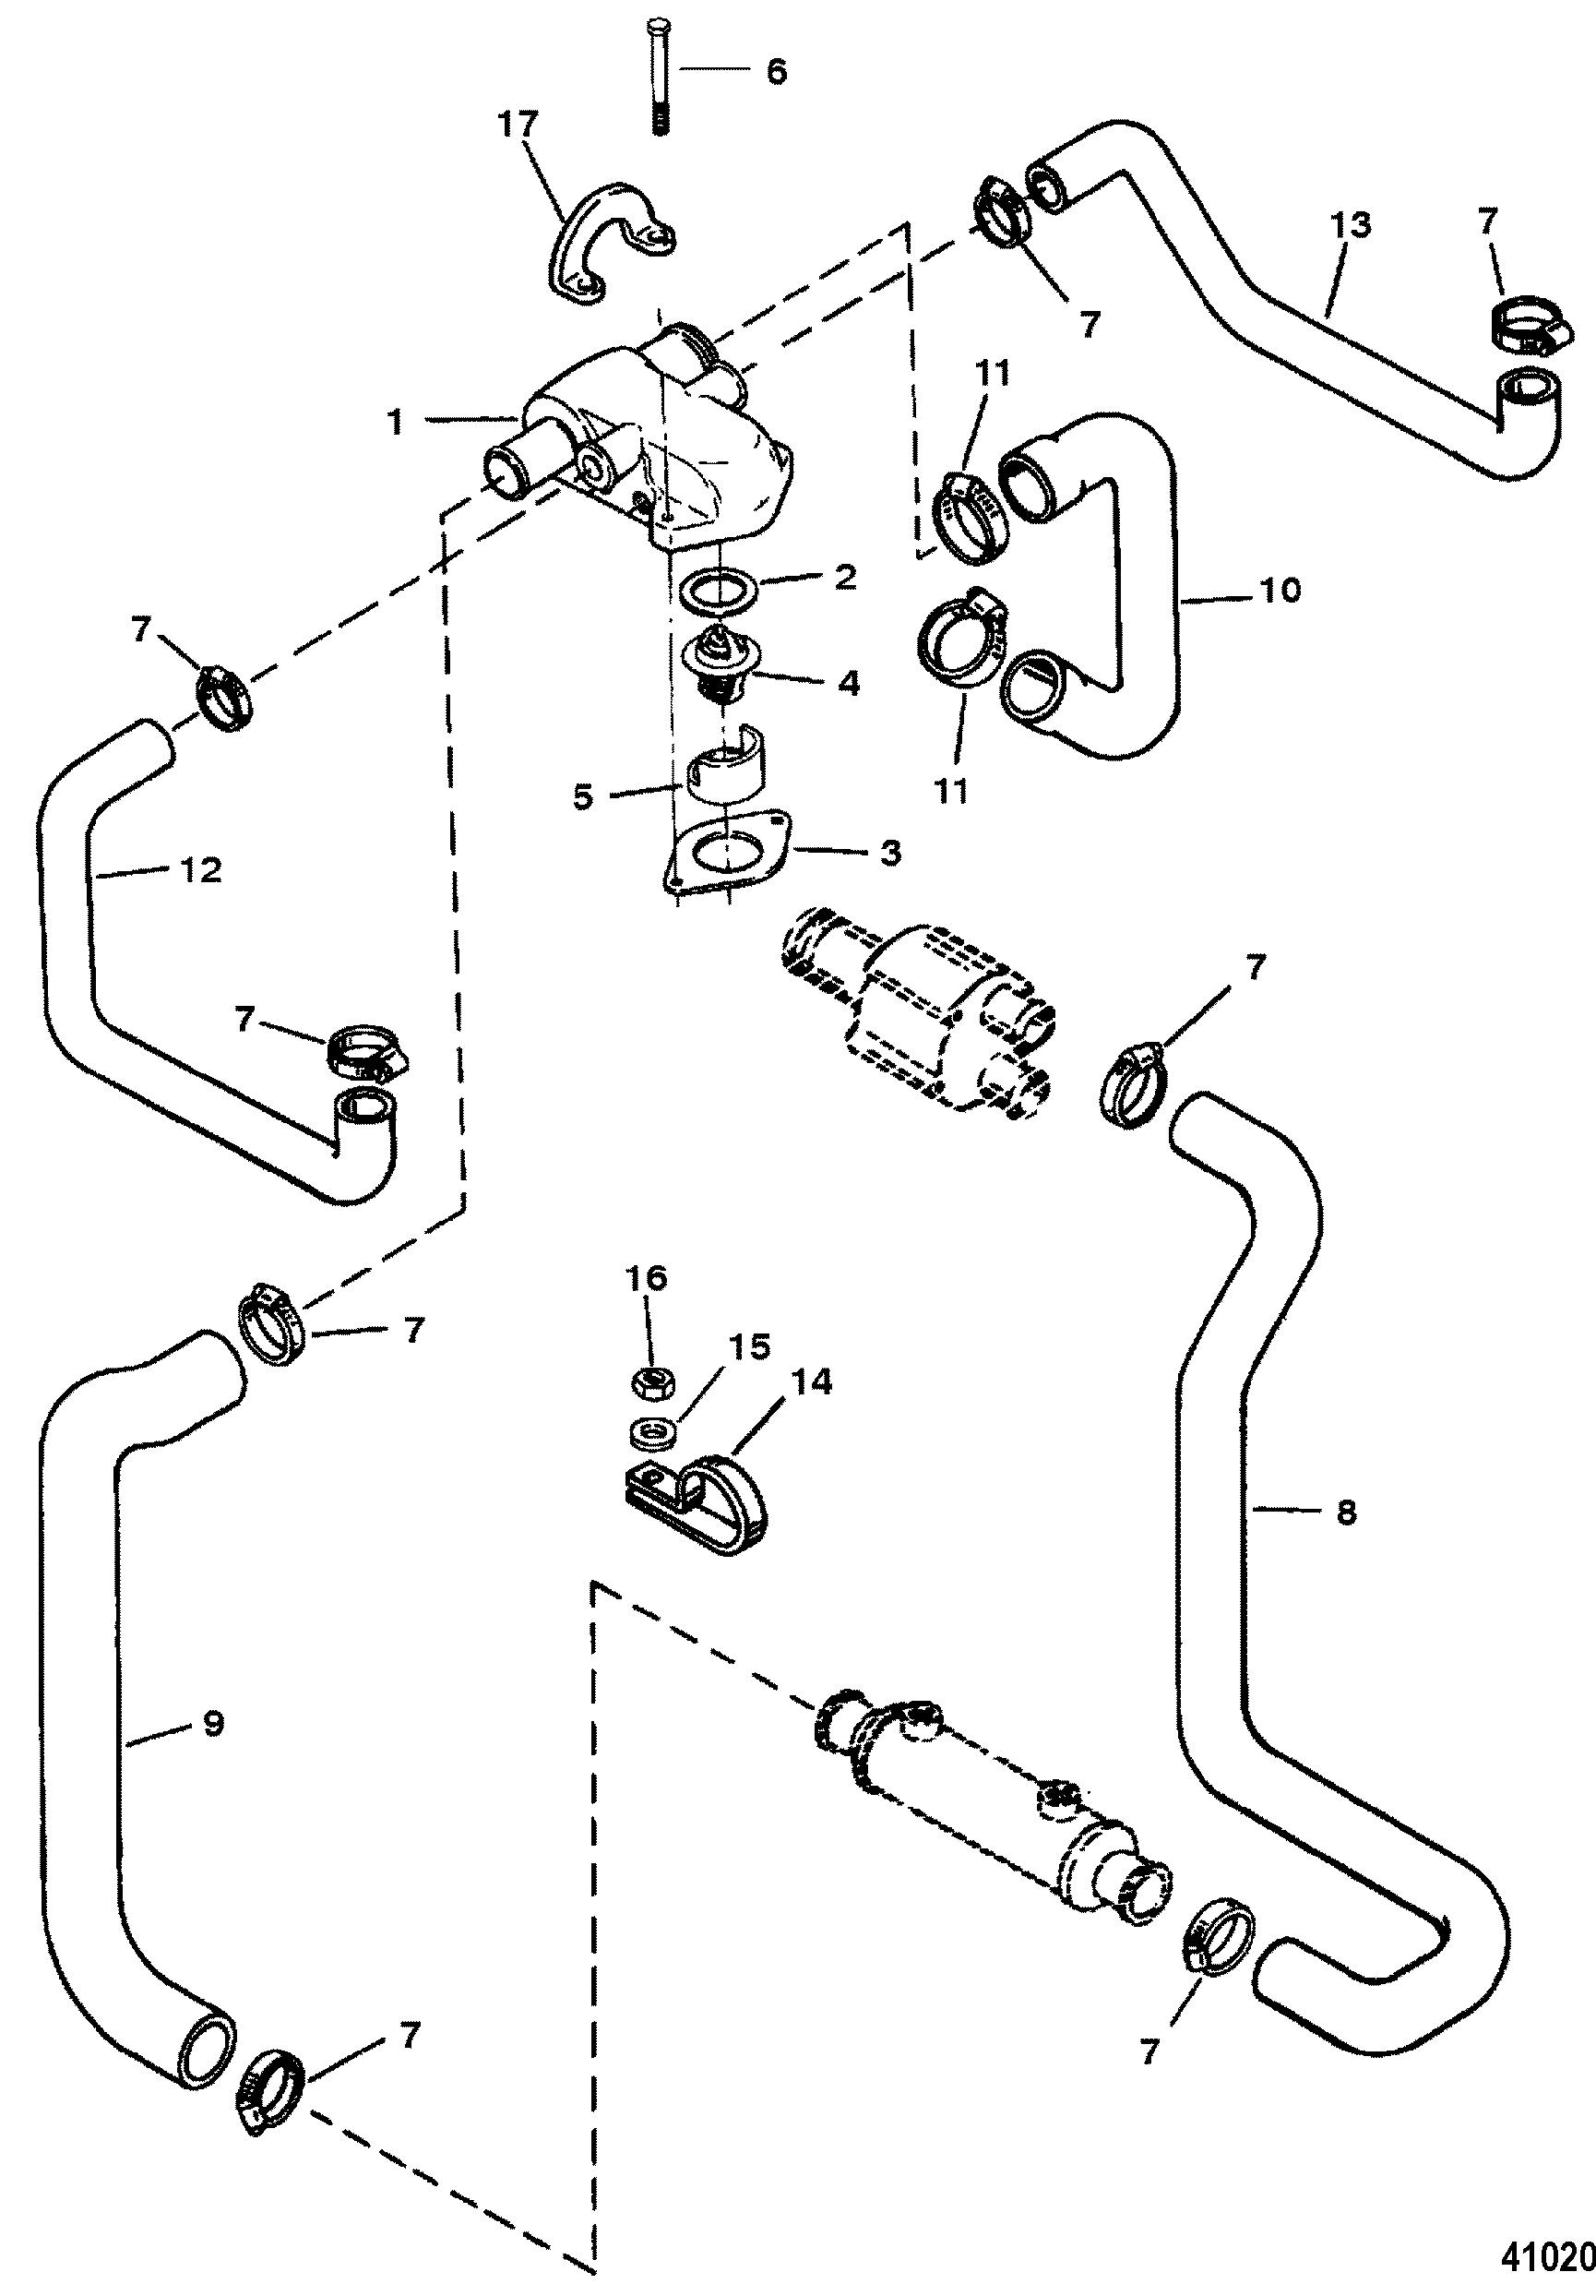 Yanmar Injector Pump Diagram in addition 6x66e Kubota D722 Clyinder Diesel Cranks Won T Start Its likewise Yanmar Diesel Engine Parts Catalog besides Ford 3000 Sel Tractor Fuel Parts as well Yanmar 1500 Wiring Diagram. on yanmar fuel filter replacement